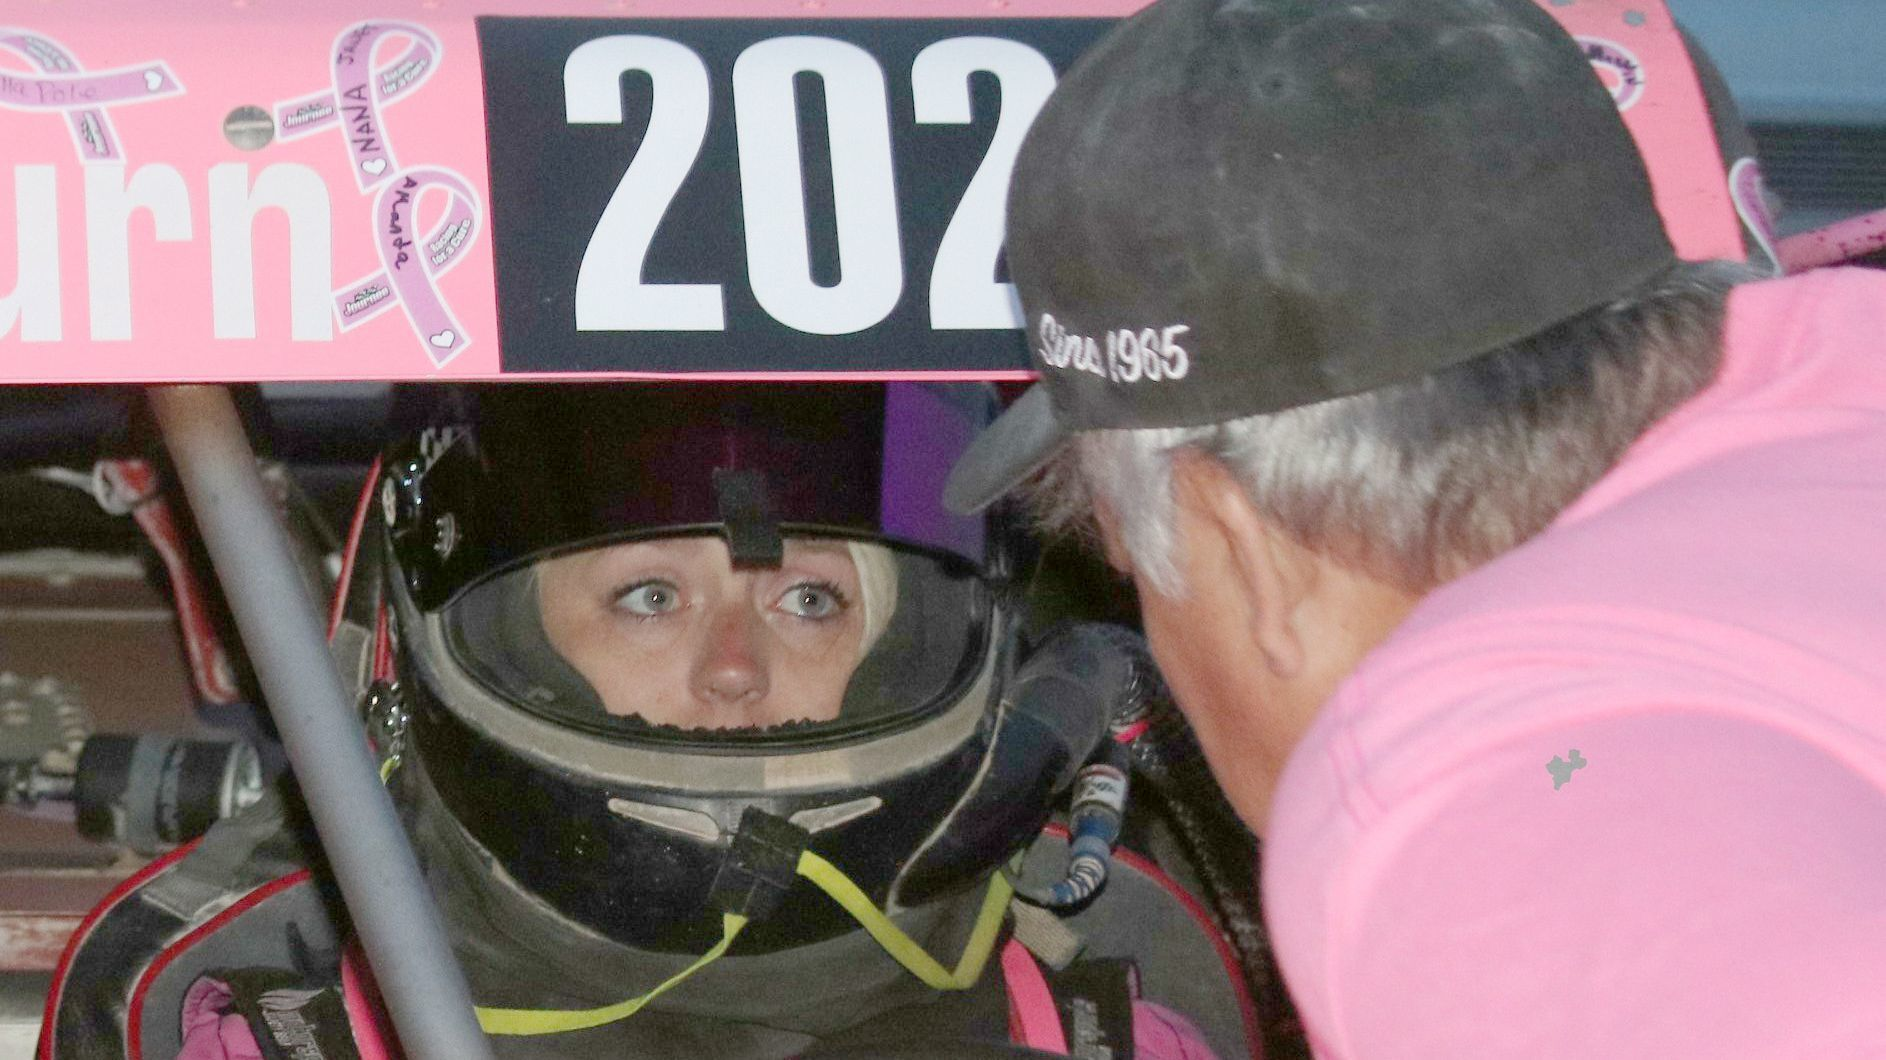 Team DaveCo crew leader David Hendrickson calms Mint 400 Race participant Journee Richardson before the start of the race.